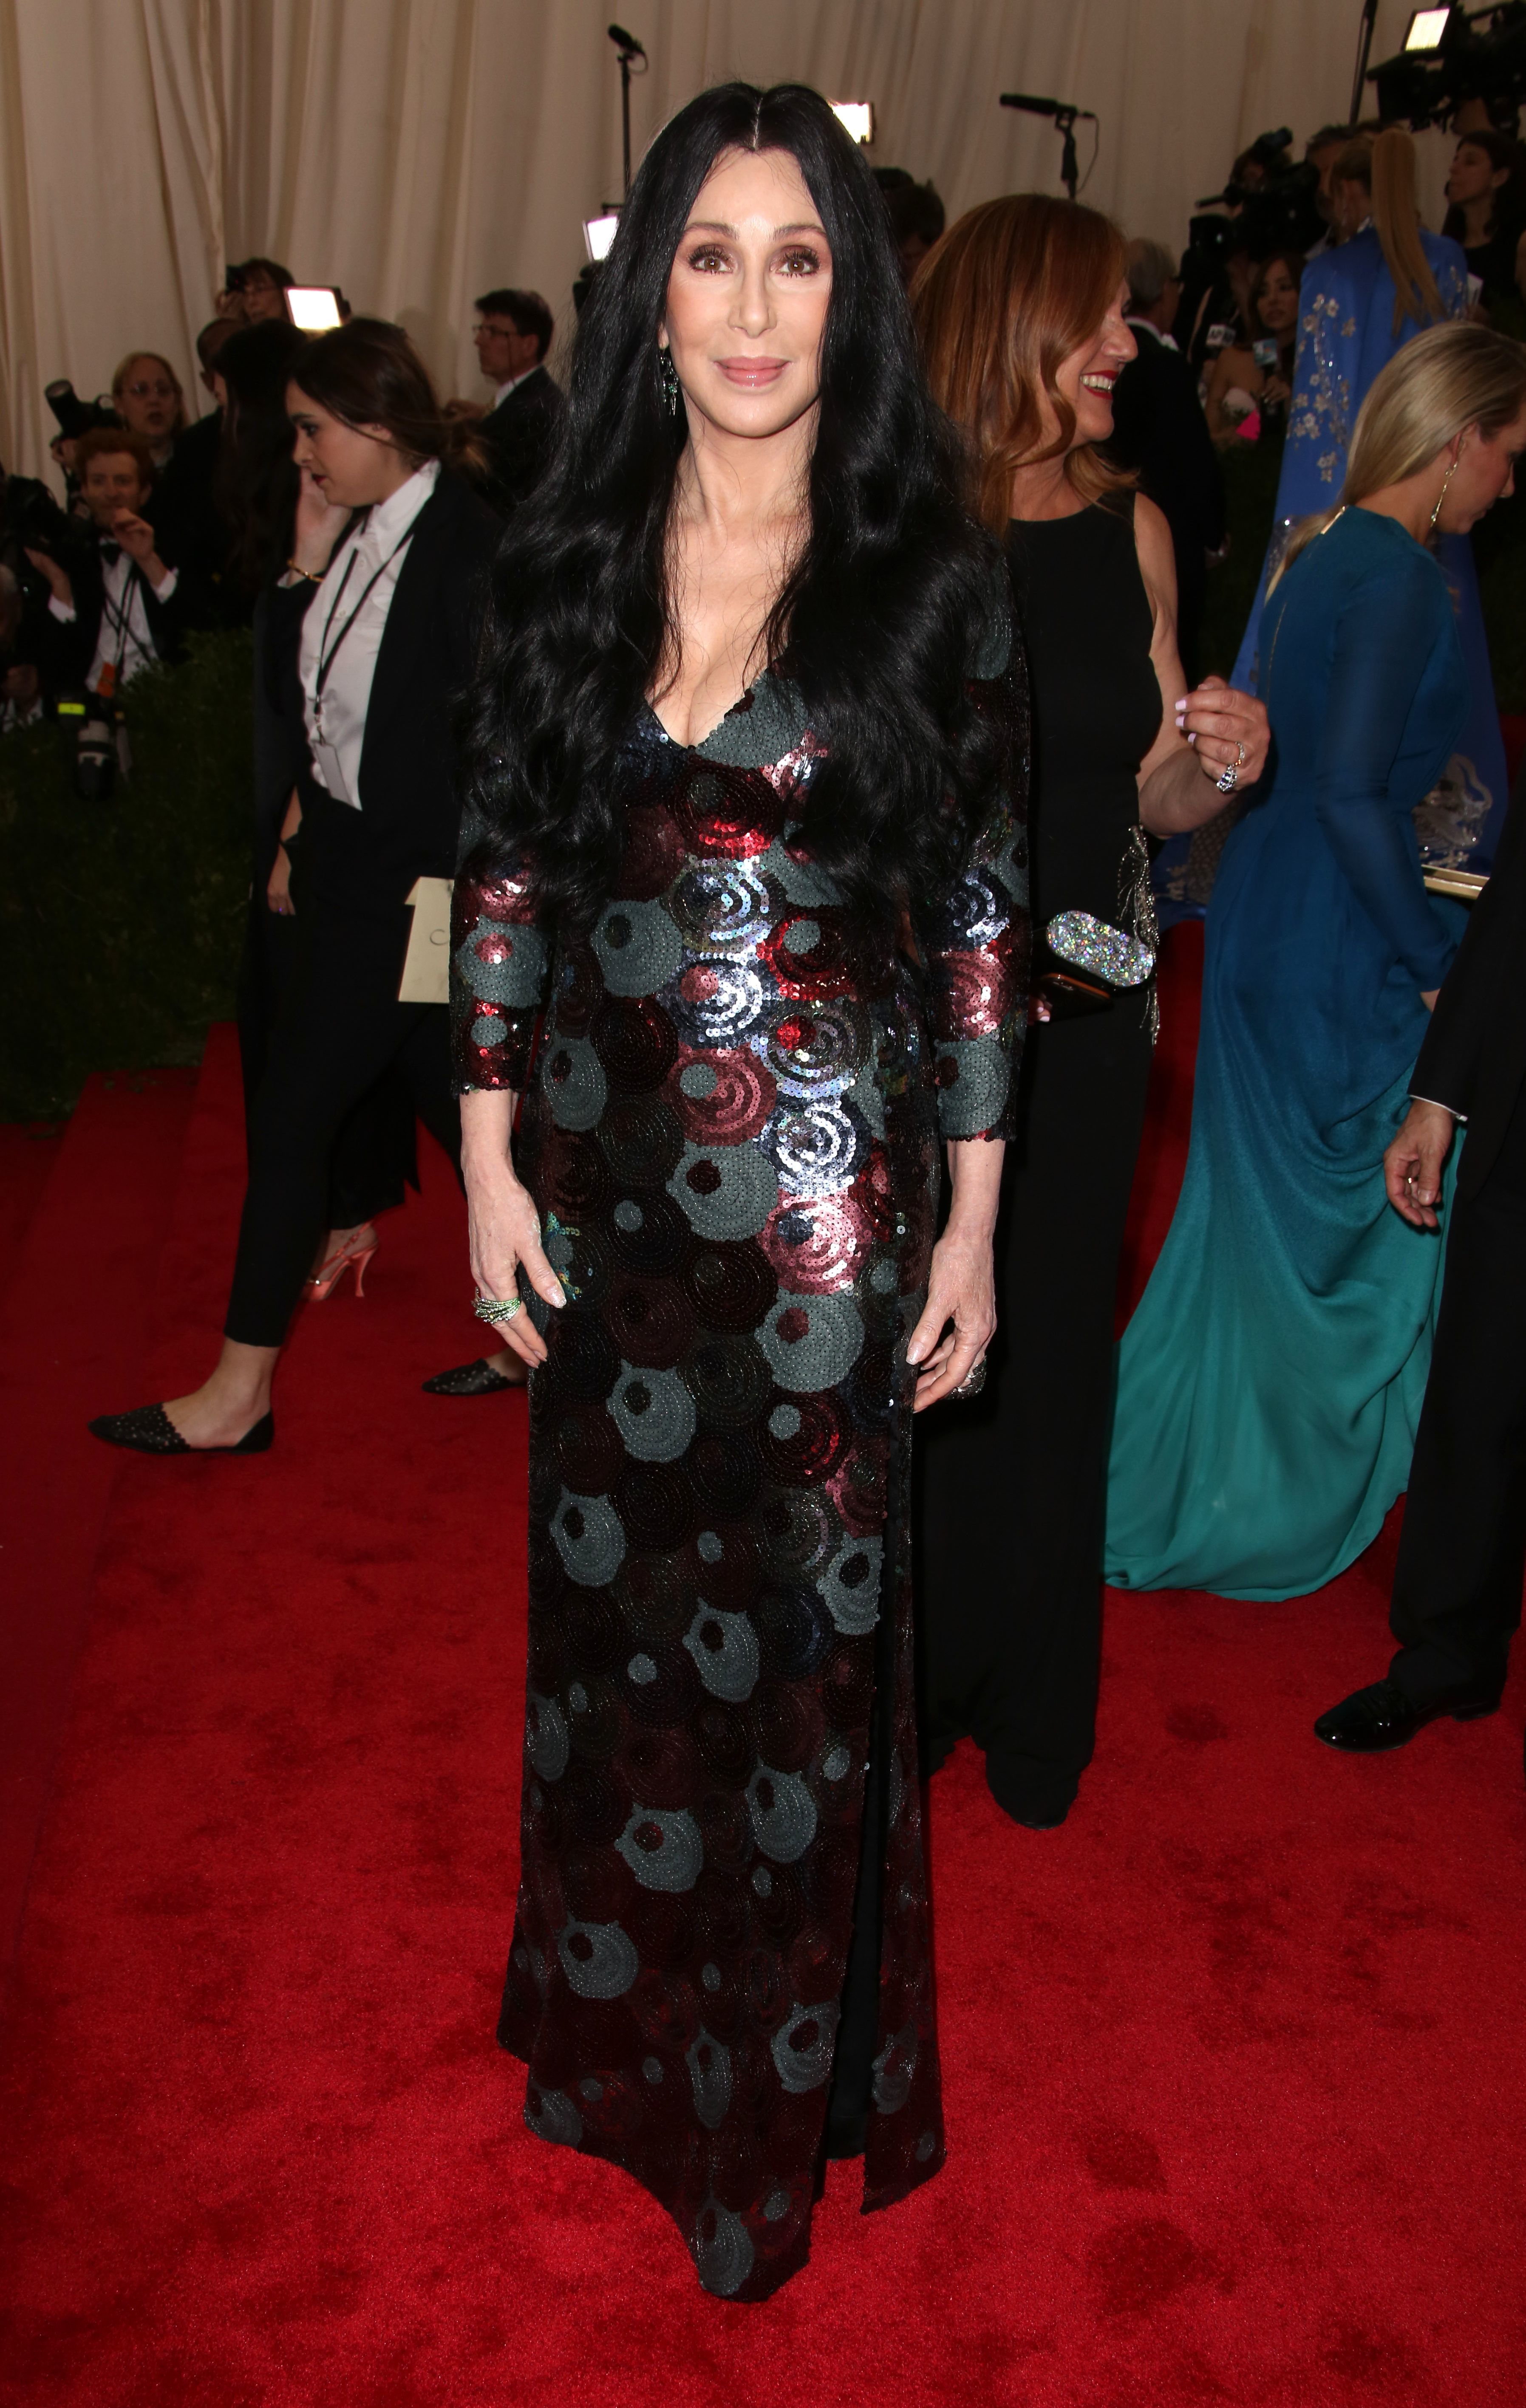 Cher survives potentially deadly virus